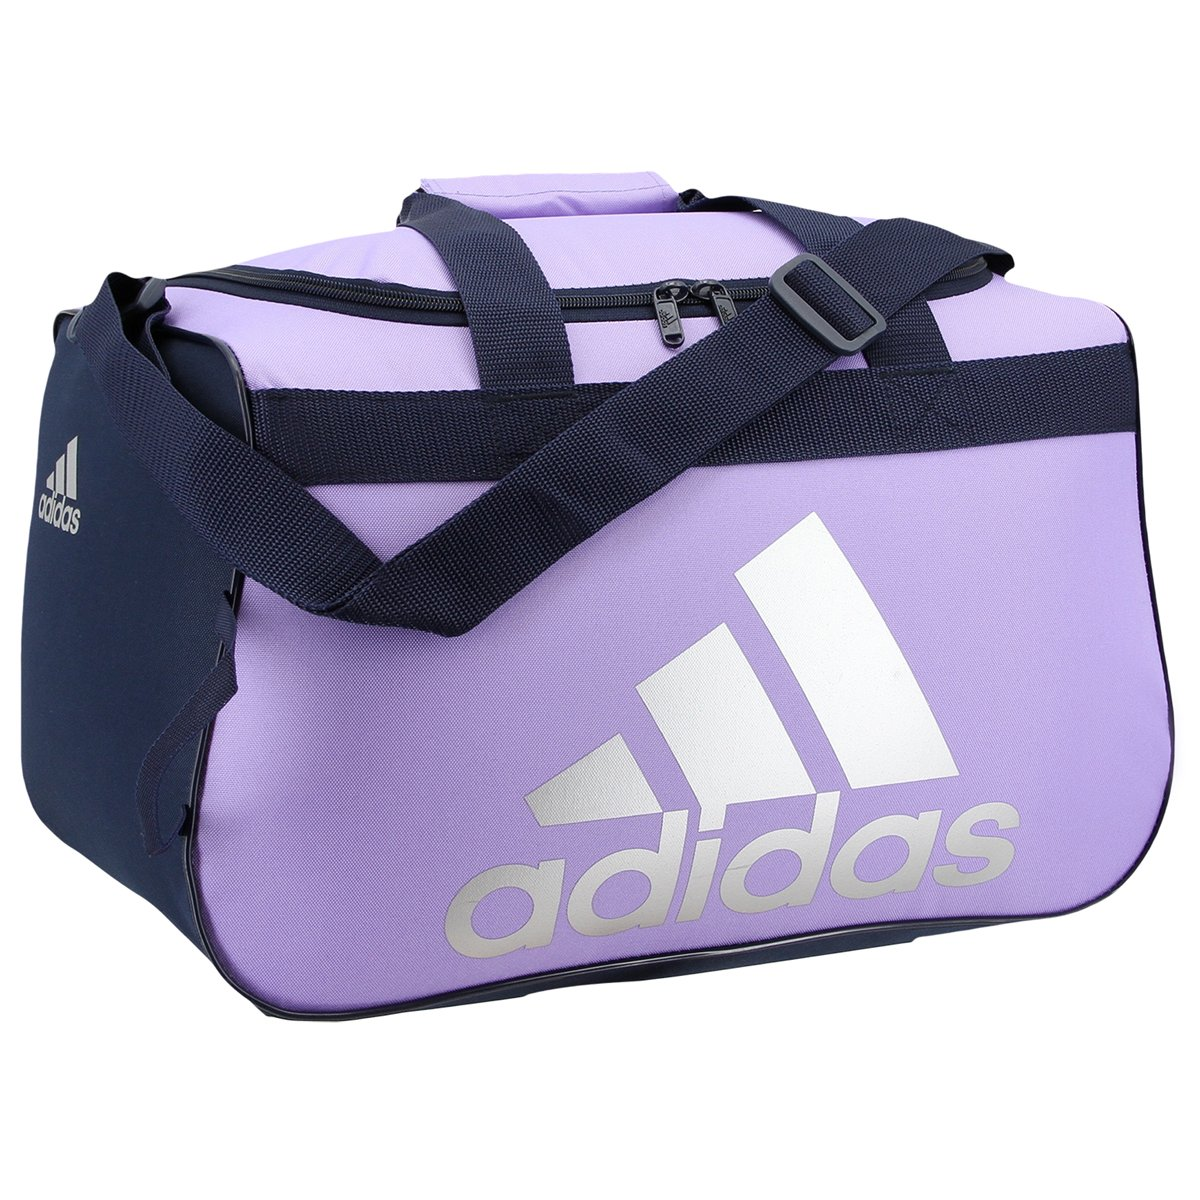 c27e60d1cad4 Amazon offers this adidas Diablo Small Duffle Bag on sale for  15.99 (Reg.   25). Get free ship on  25 or free 2-day ship with Prime.